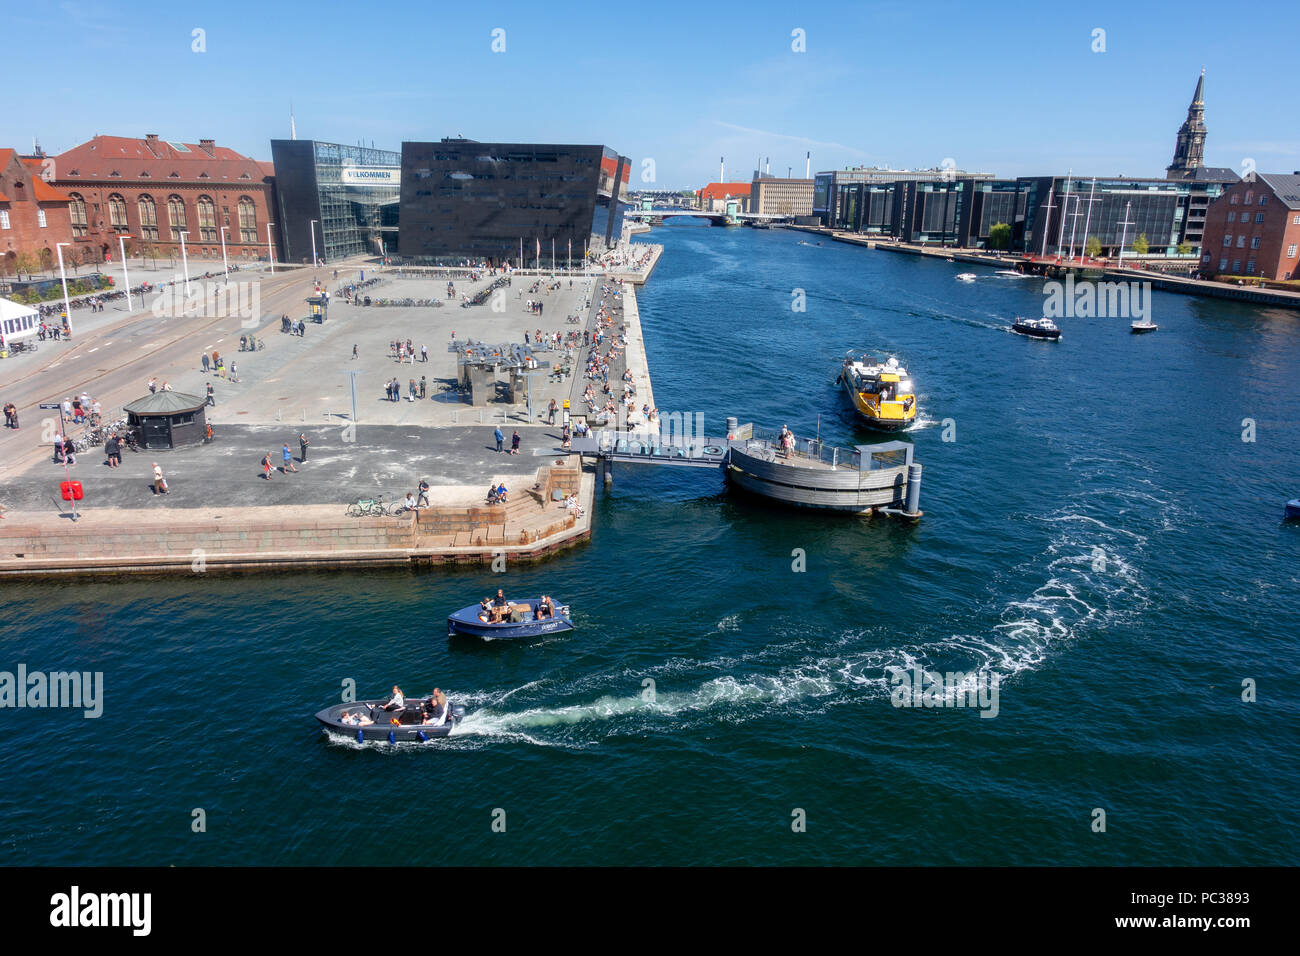 Copenhagen waterfront with The Black Diamond and Soren Kierkegaards Square, yellow water bus and boats, seen from DAC's terrace in the Blox building - Stock Image